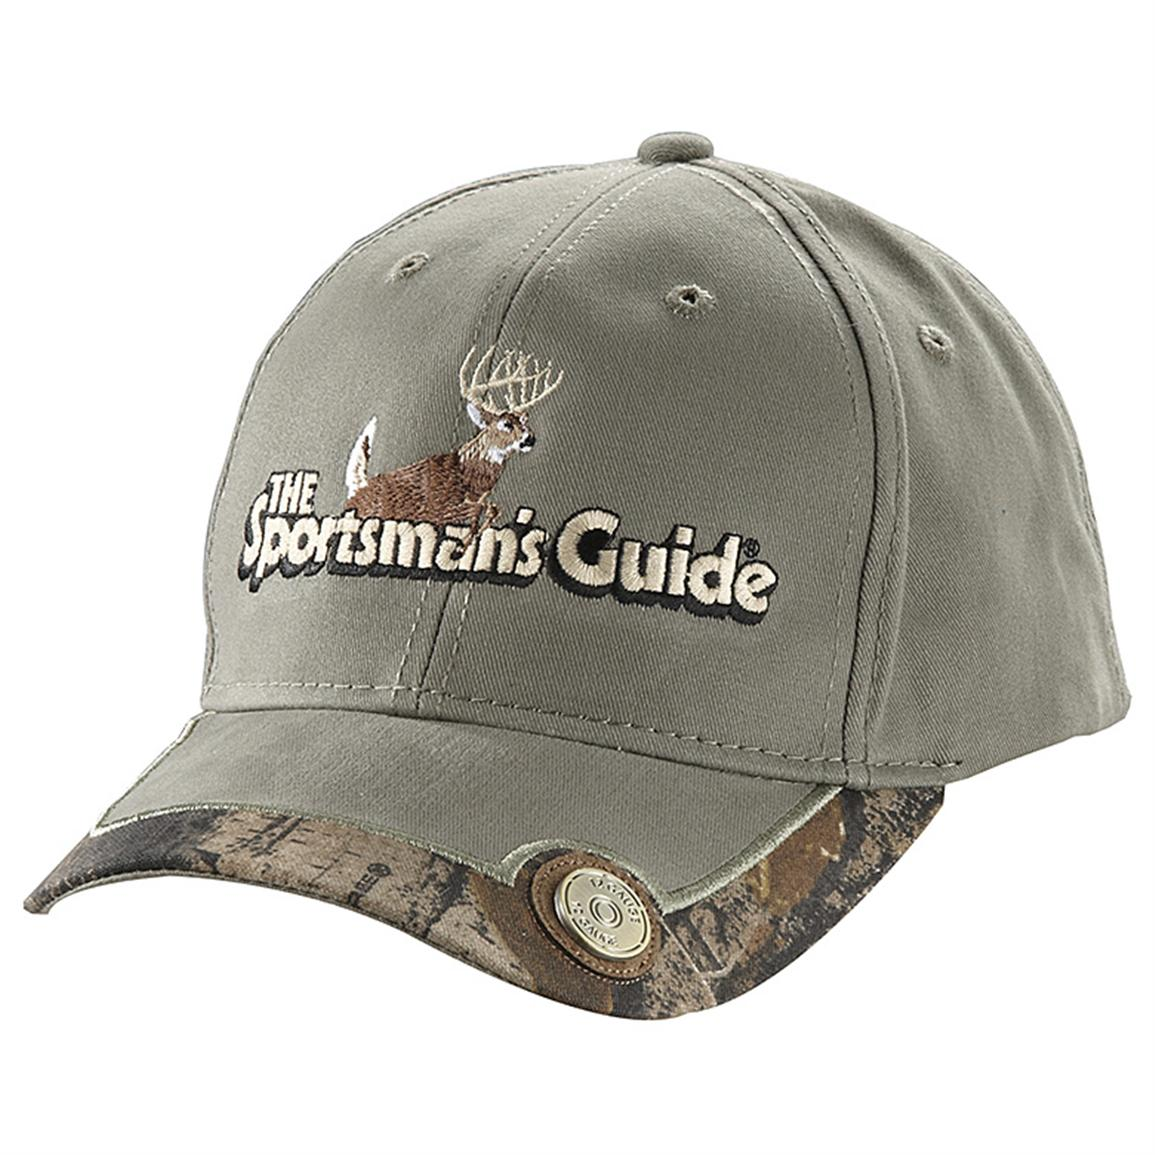 The Sportsman's Guide® Logo 12 gauge Baseball Cap, Taupe